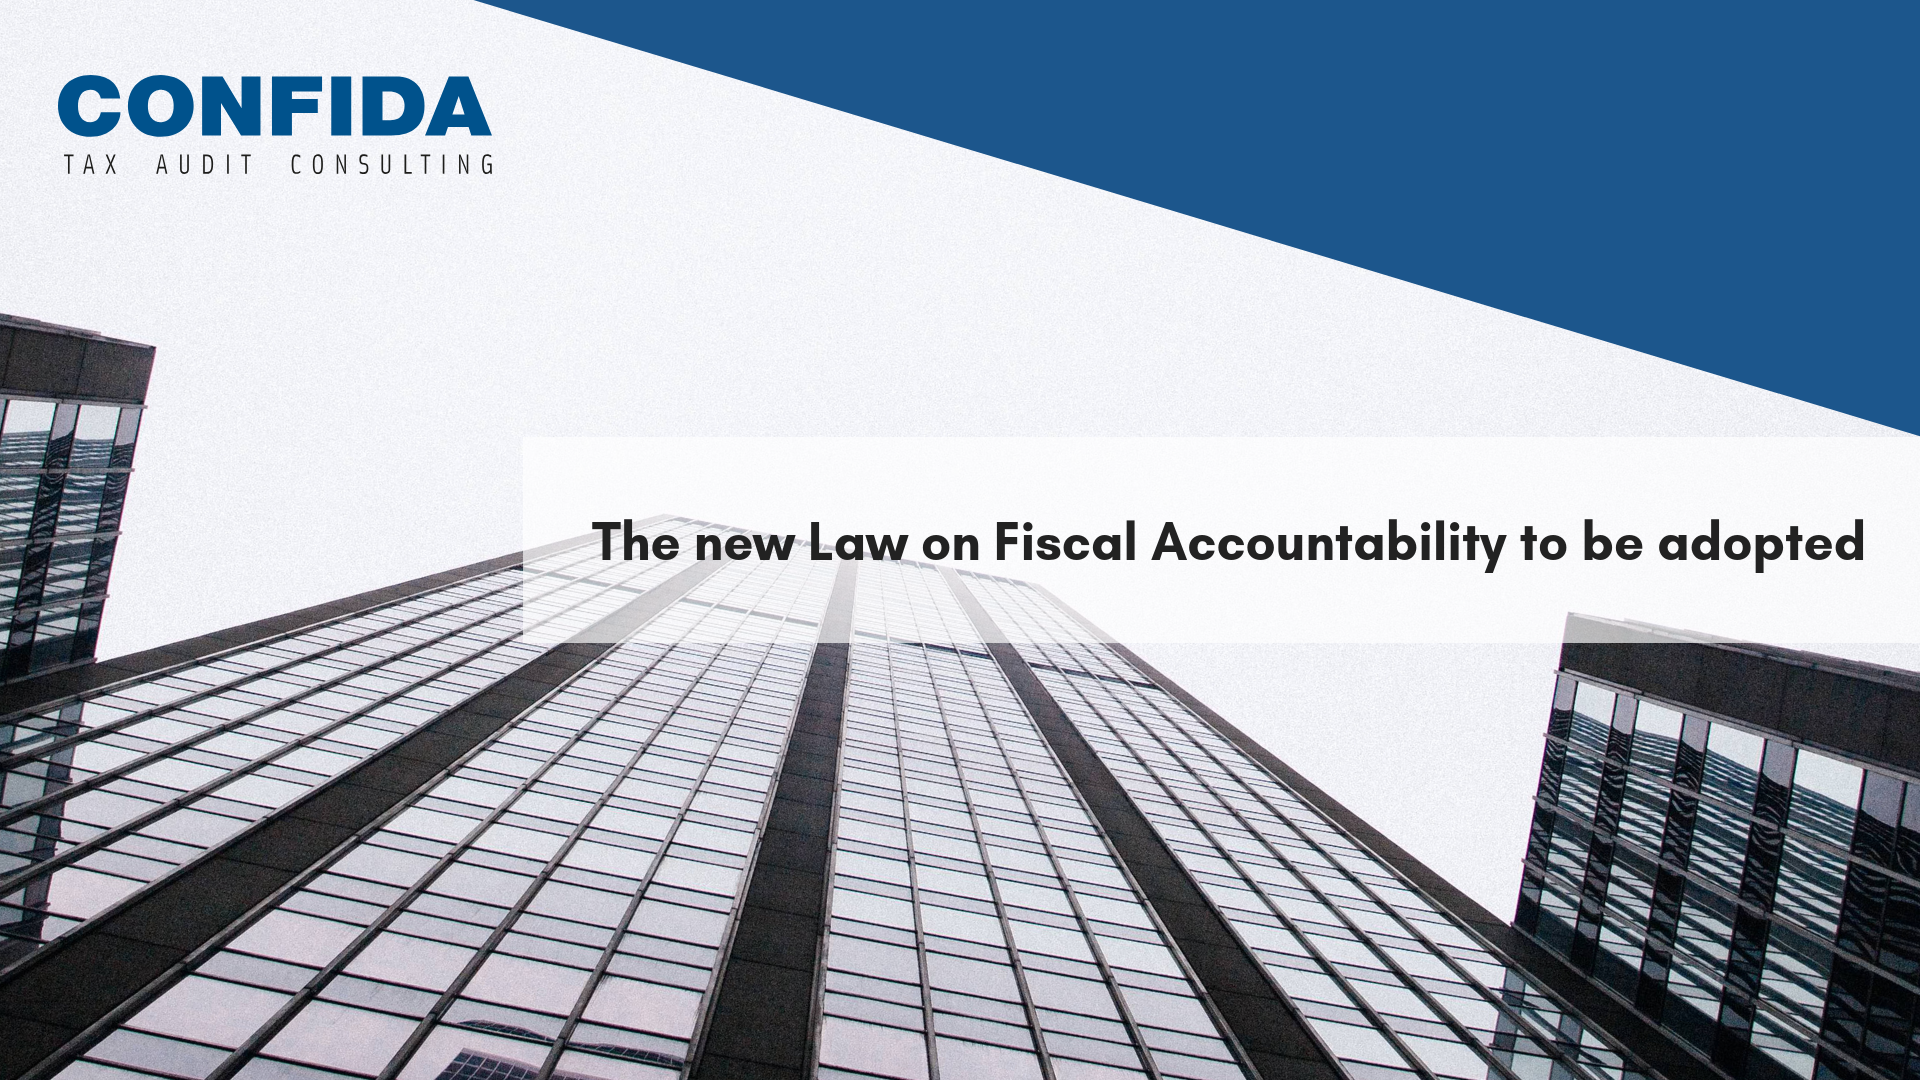 The new Law on Fiscal Accountability to be adopted